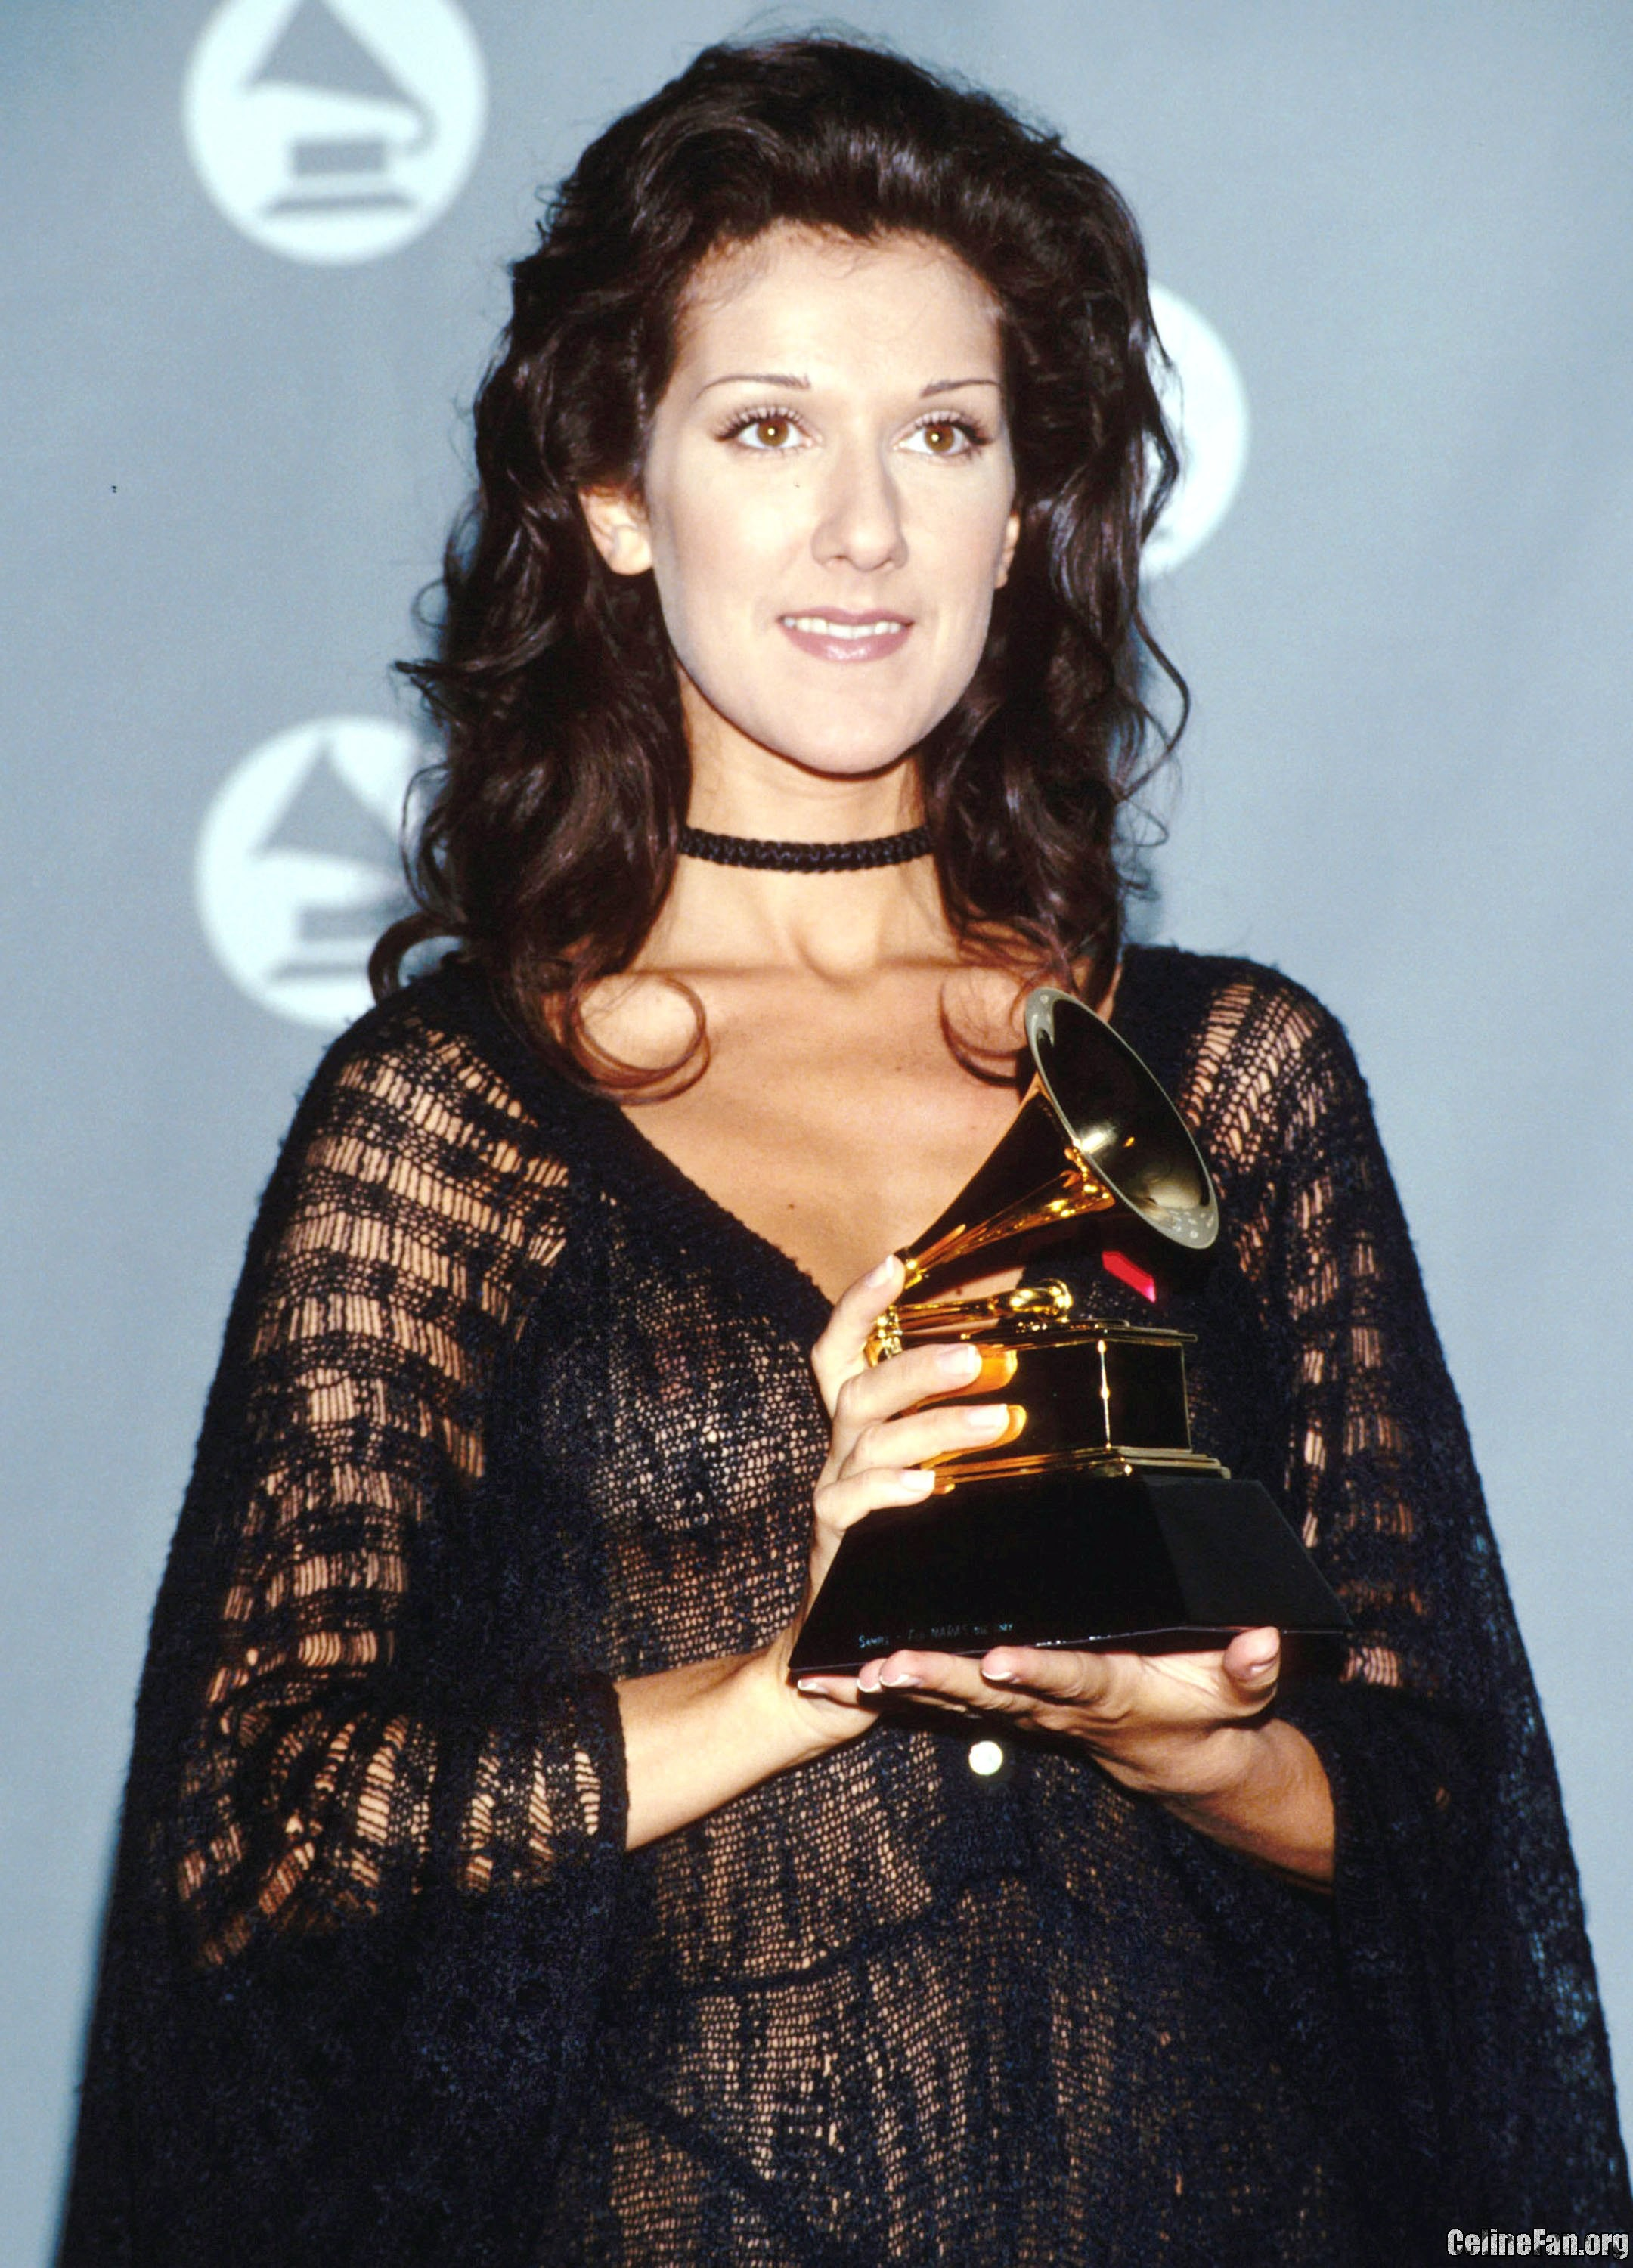 Music from the 90s images Celine Dion HD wallpaper and background photos